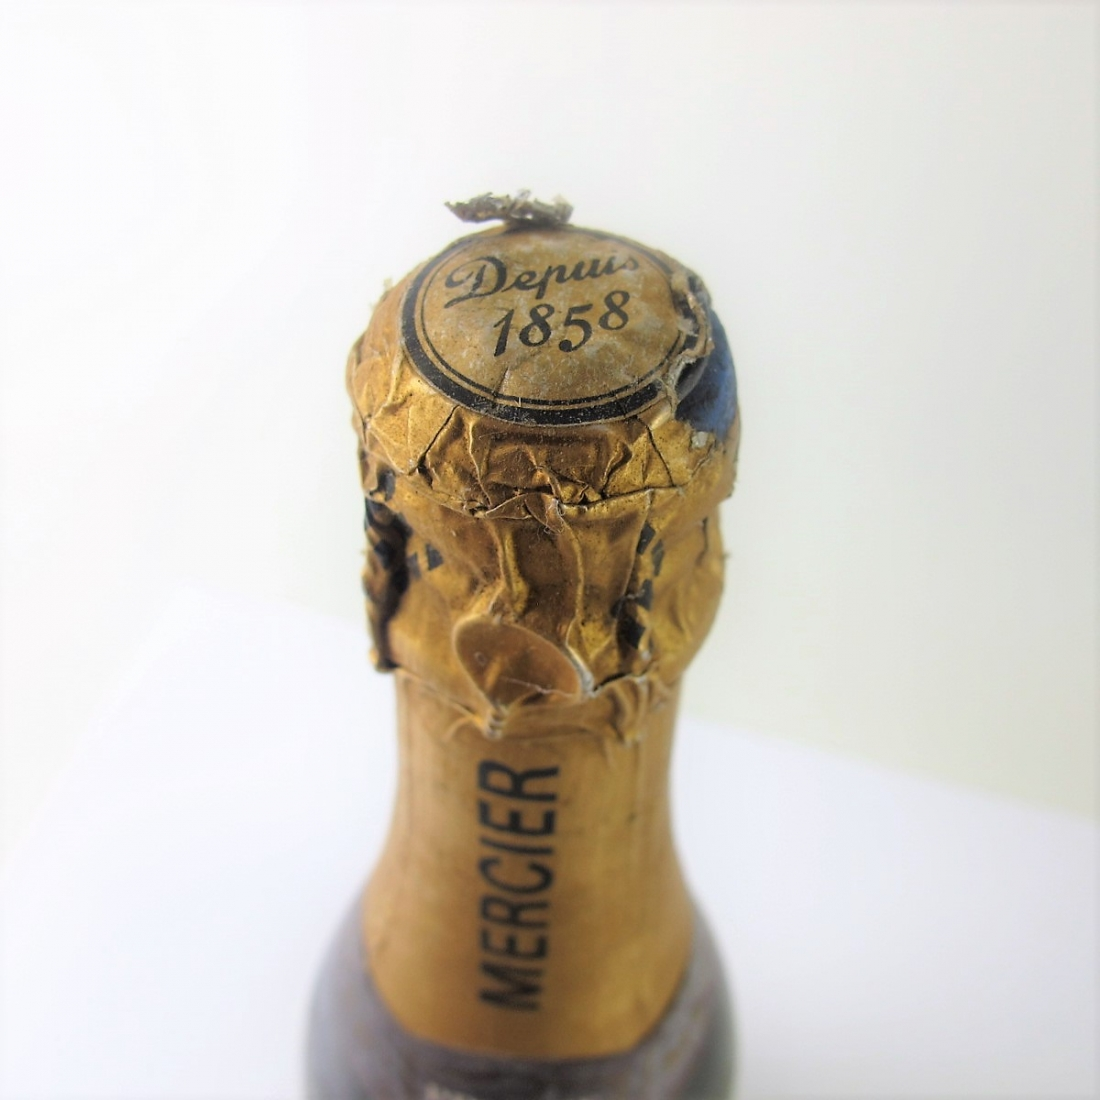 Mercier Private Brut Vintage 1966 Champagne